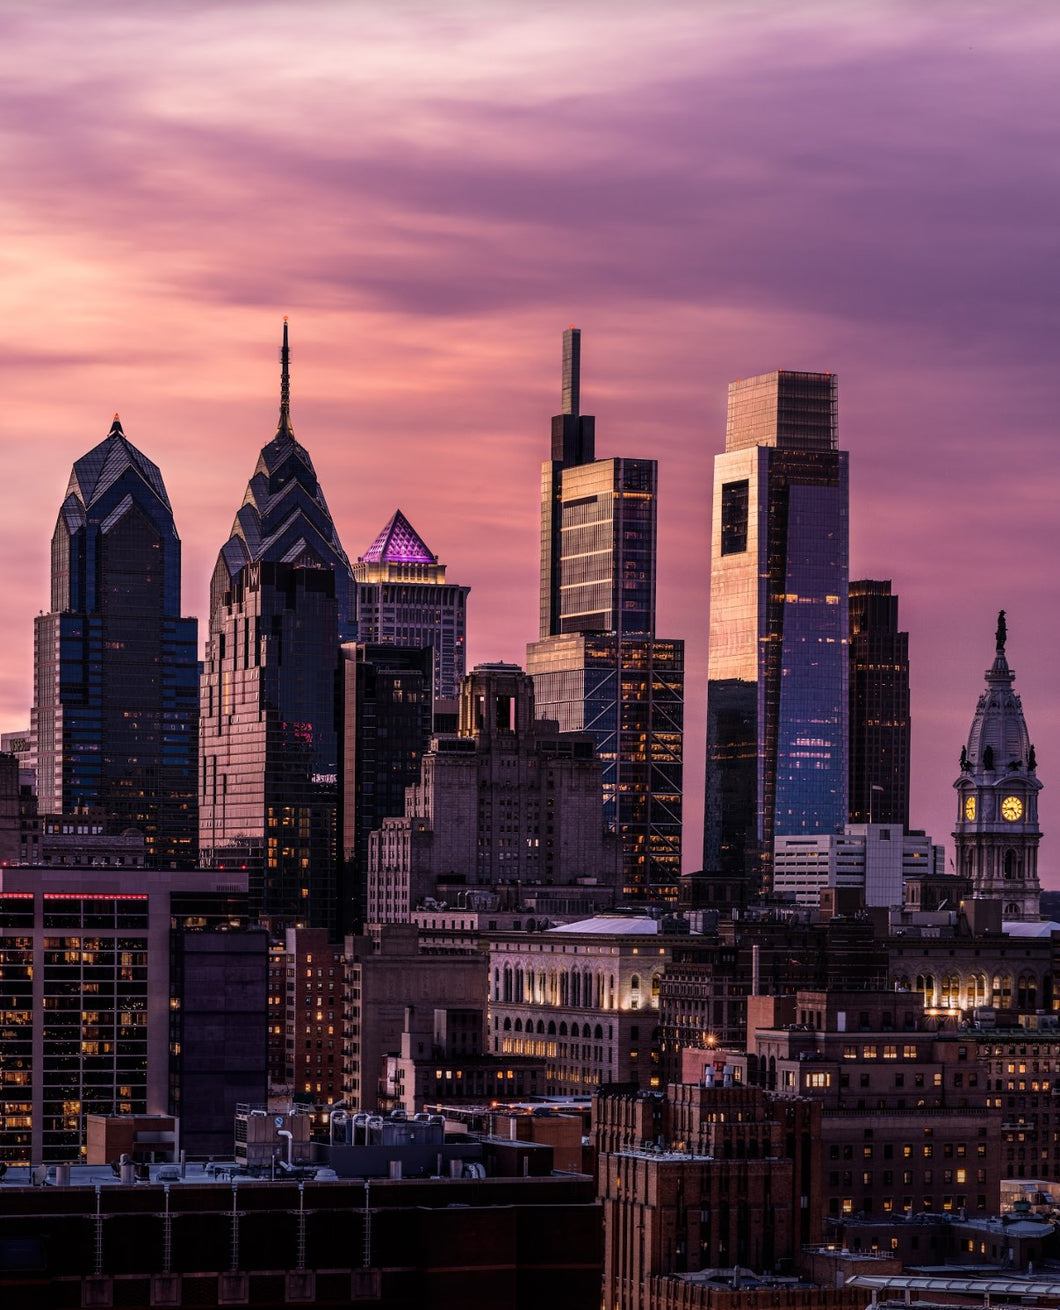 Beautiful shot of the Philly skyline by Philadelphia local photographer, Trevor Adams.